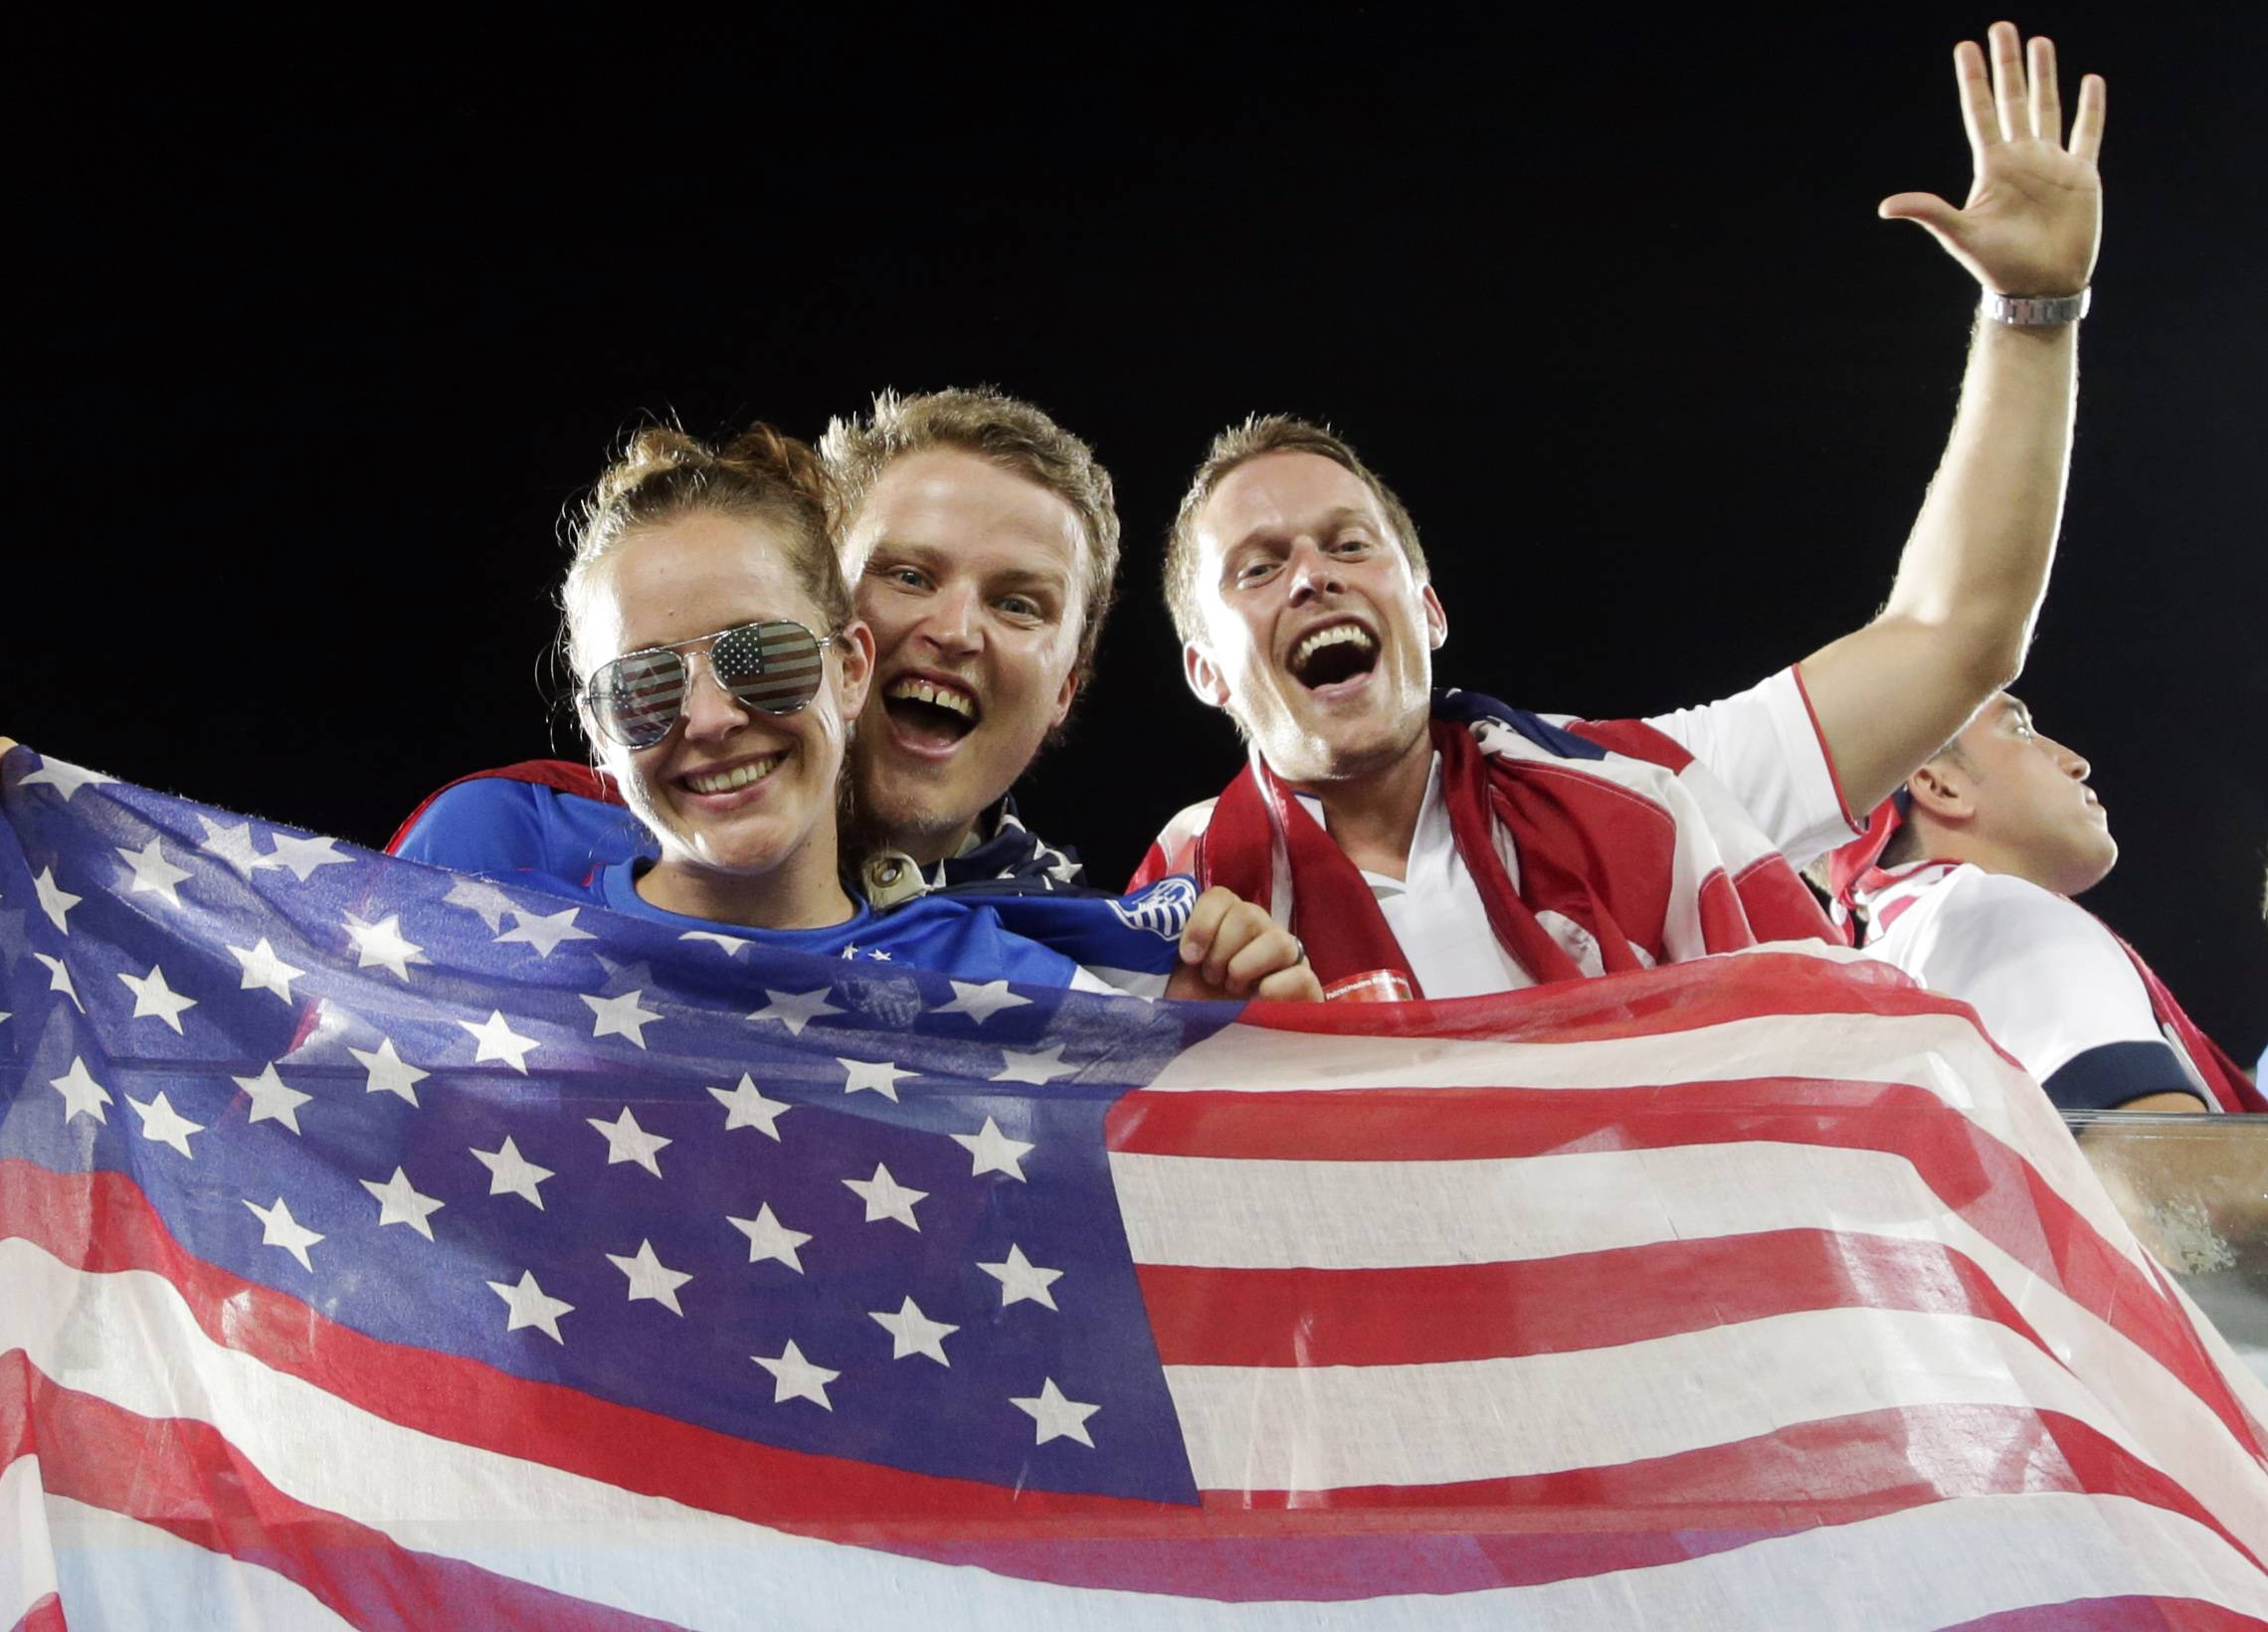 American fans had plenty to cheer about with the World Cup win over Ghana. Next up is a game with Portugal on Sunday.